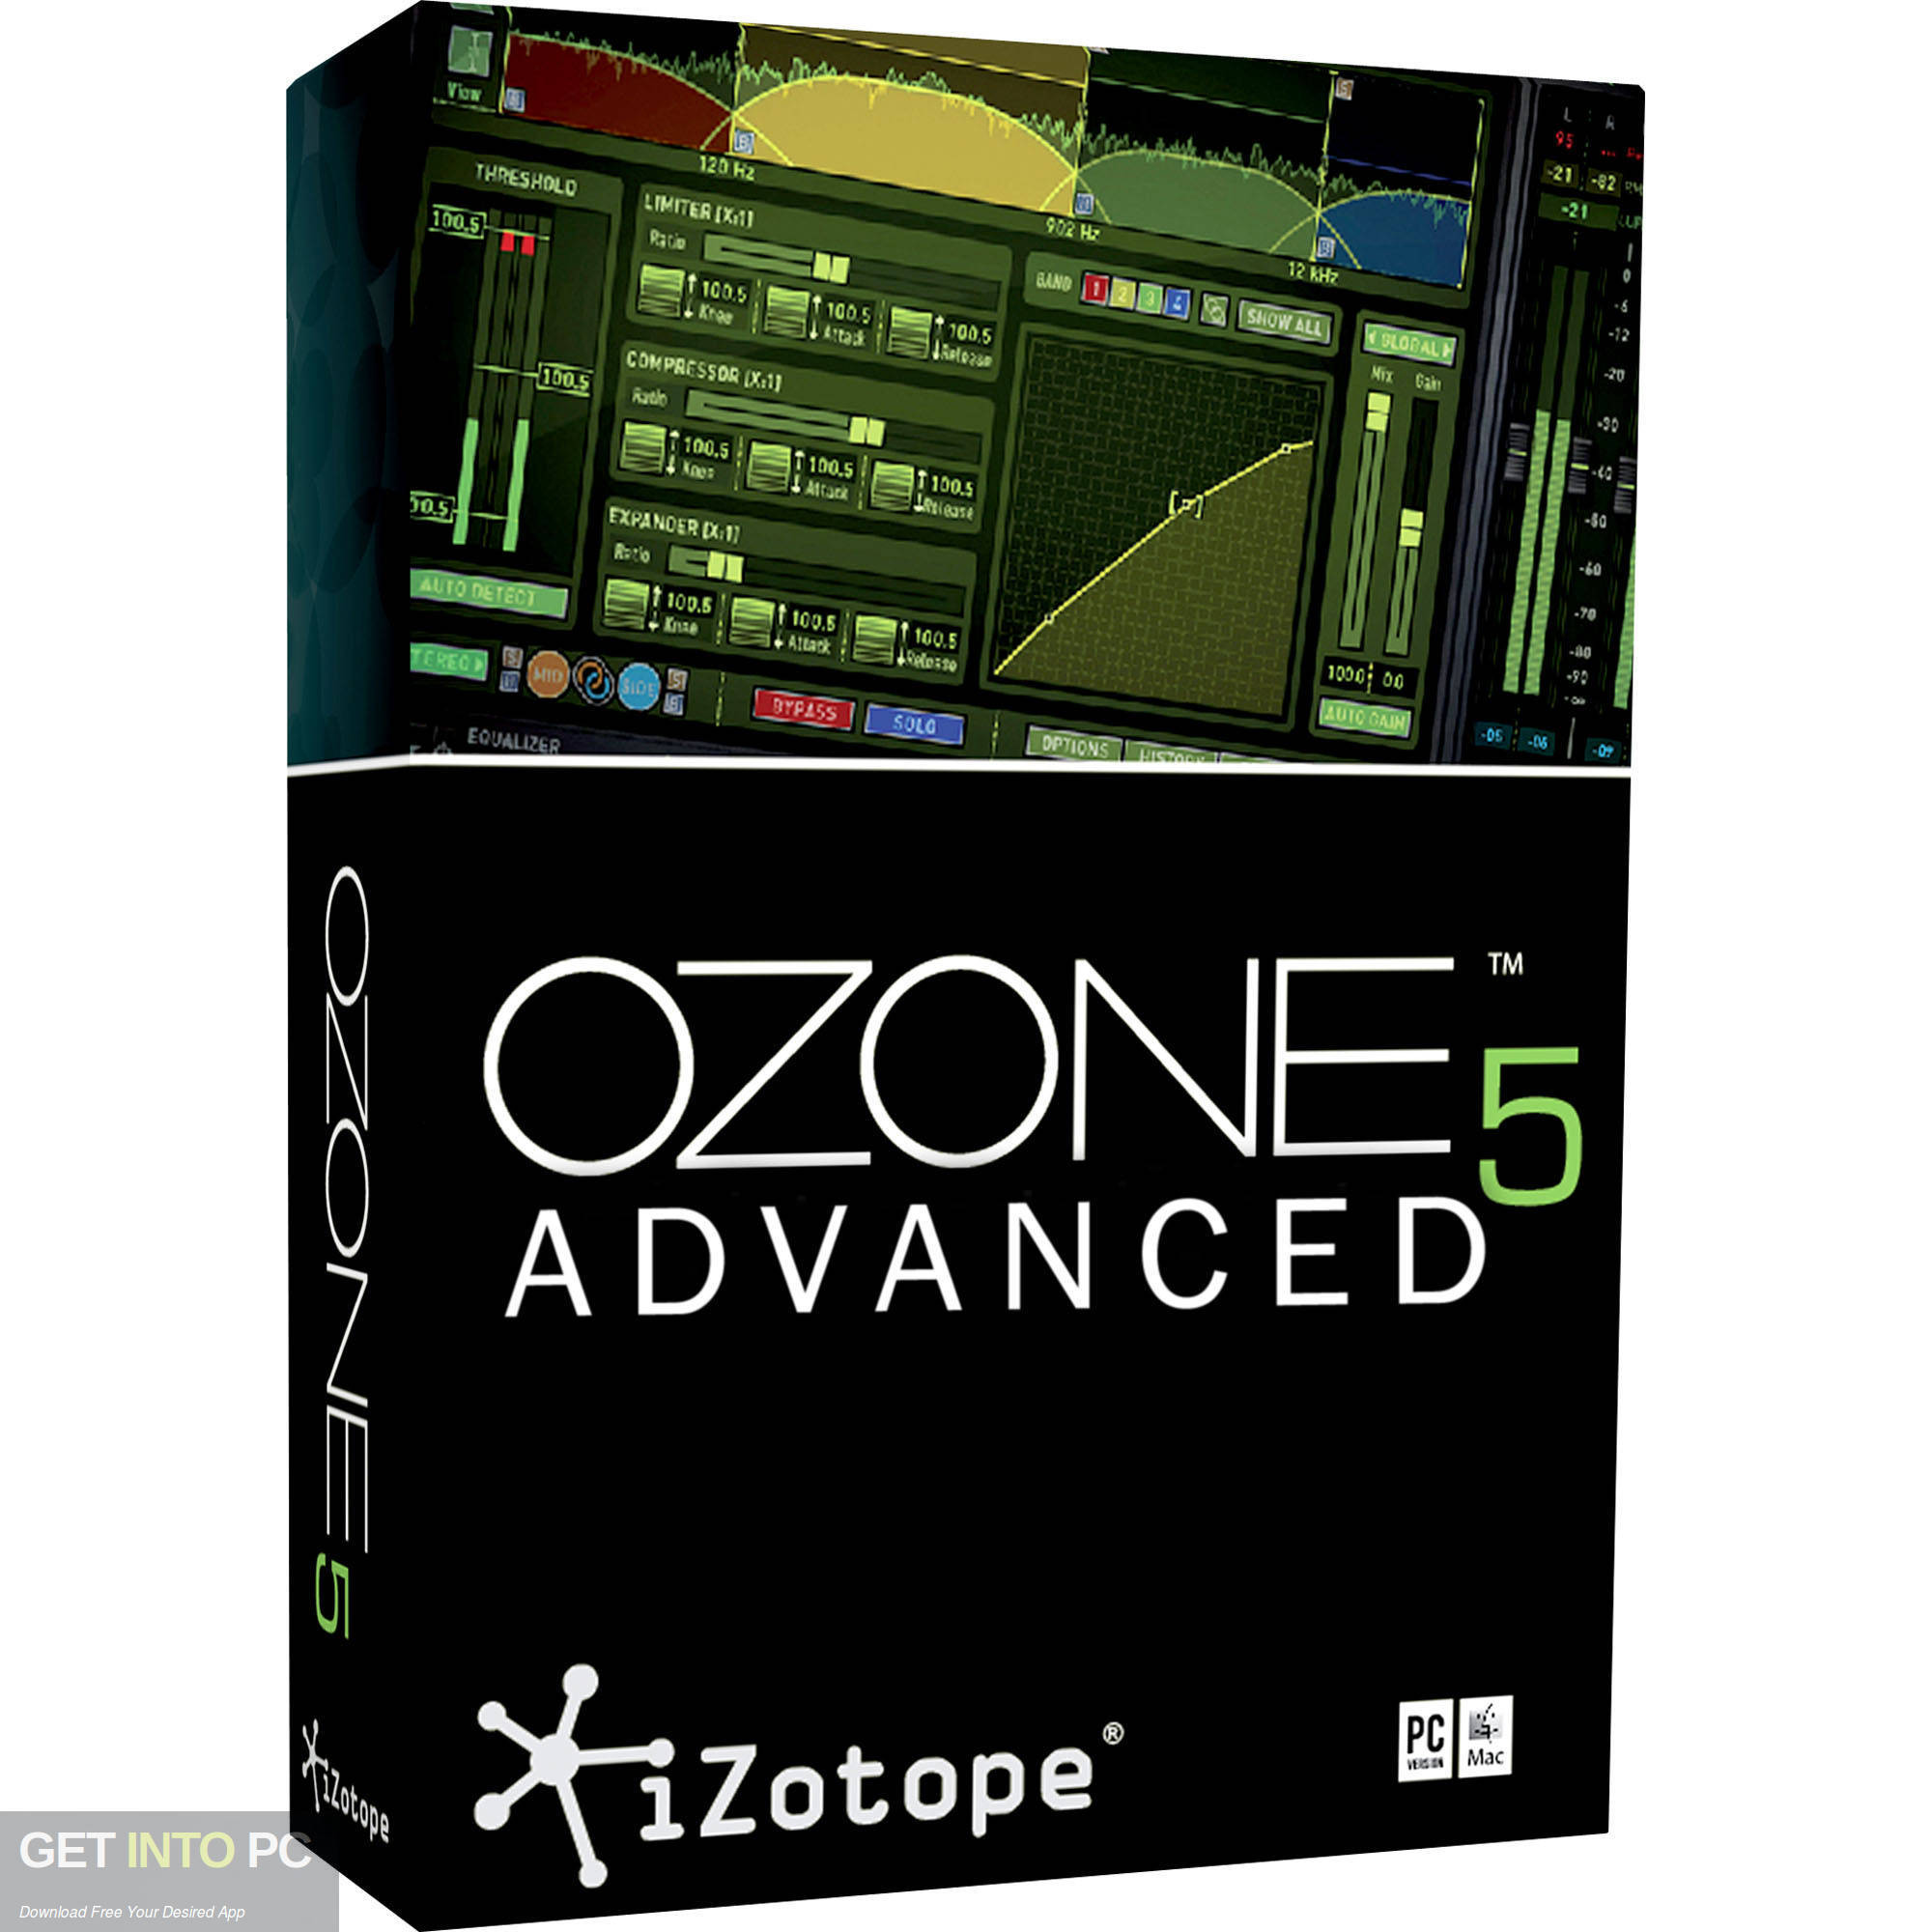 iZotope - Ozone 5 Advanced VST Free Download-GetintoPC.com